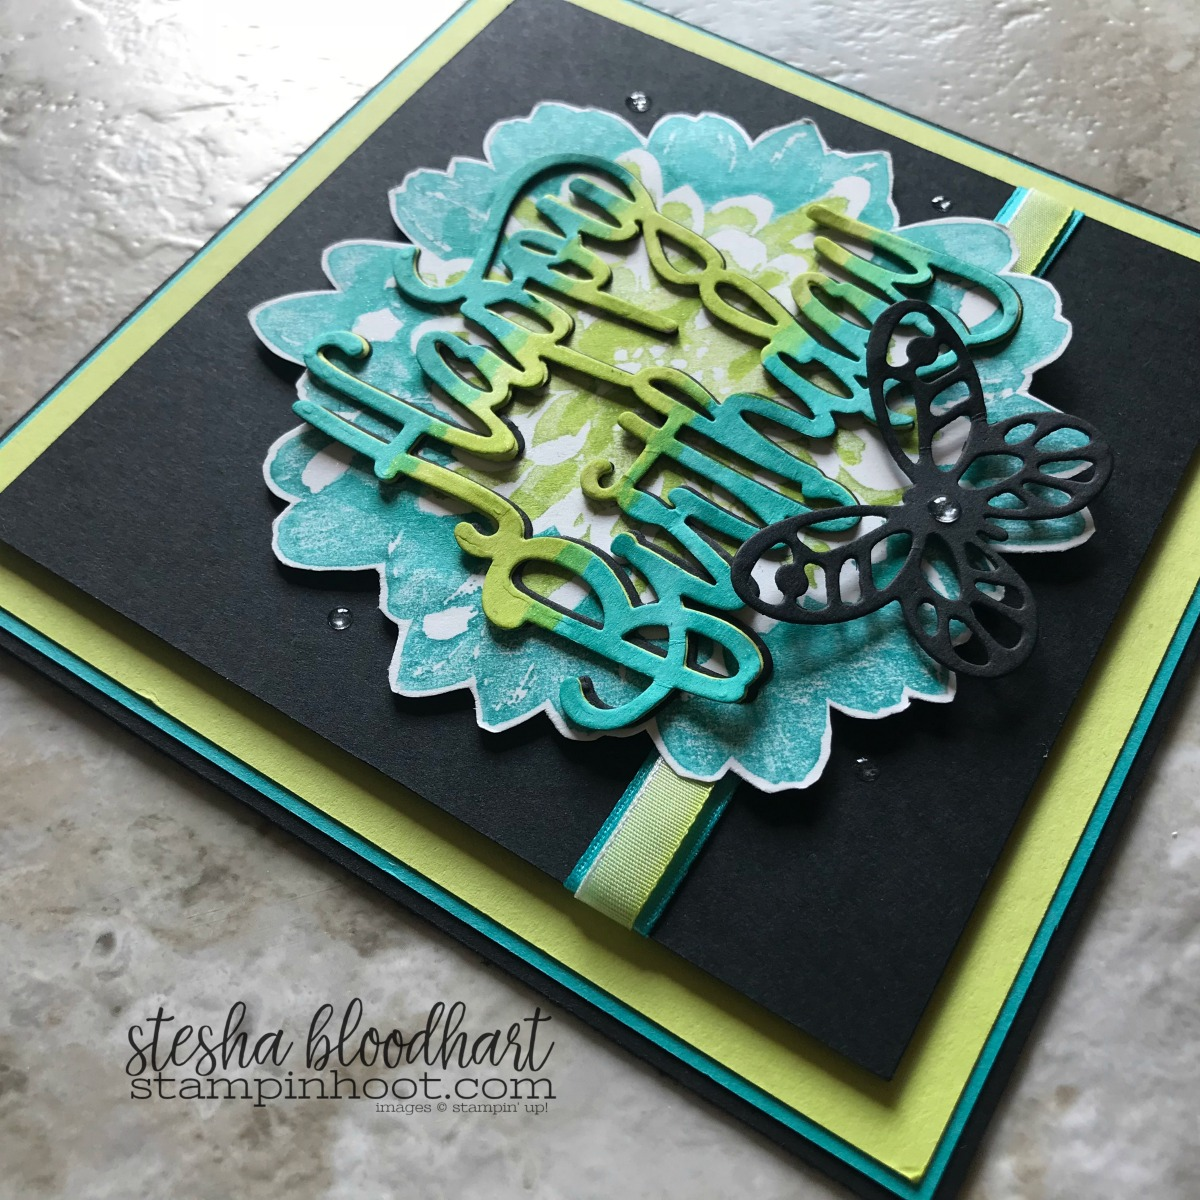 Definitely Dahlia Background Stamp by Stampin' Up! for #tgifc152 Technique Time - Marker Direct to Stamp Card by Stesha Bloodhart, Stampin' Hoot! #steshabloodhart #stampinhoot